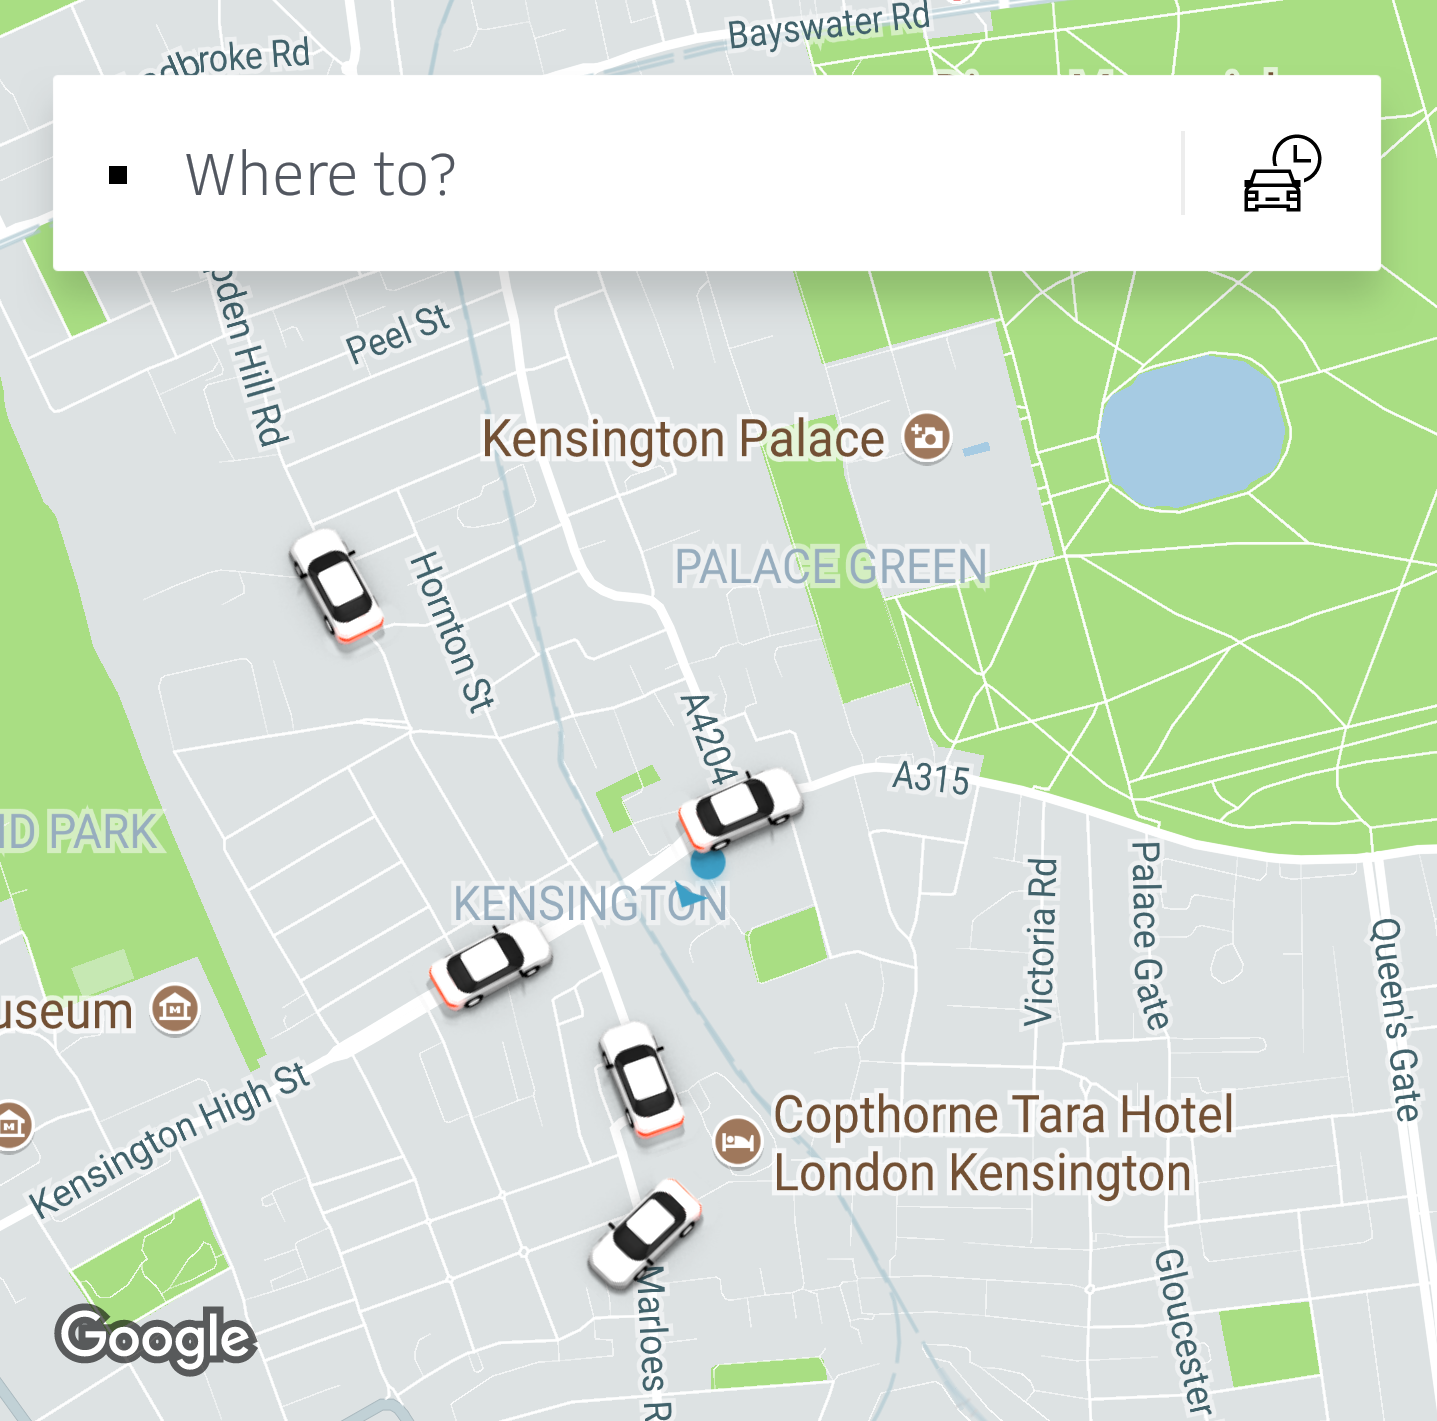 Uber to increase fares in central London to help pay new congestion